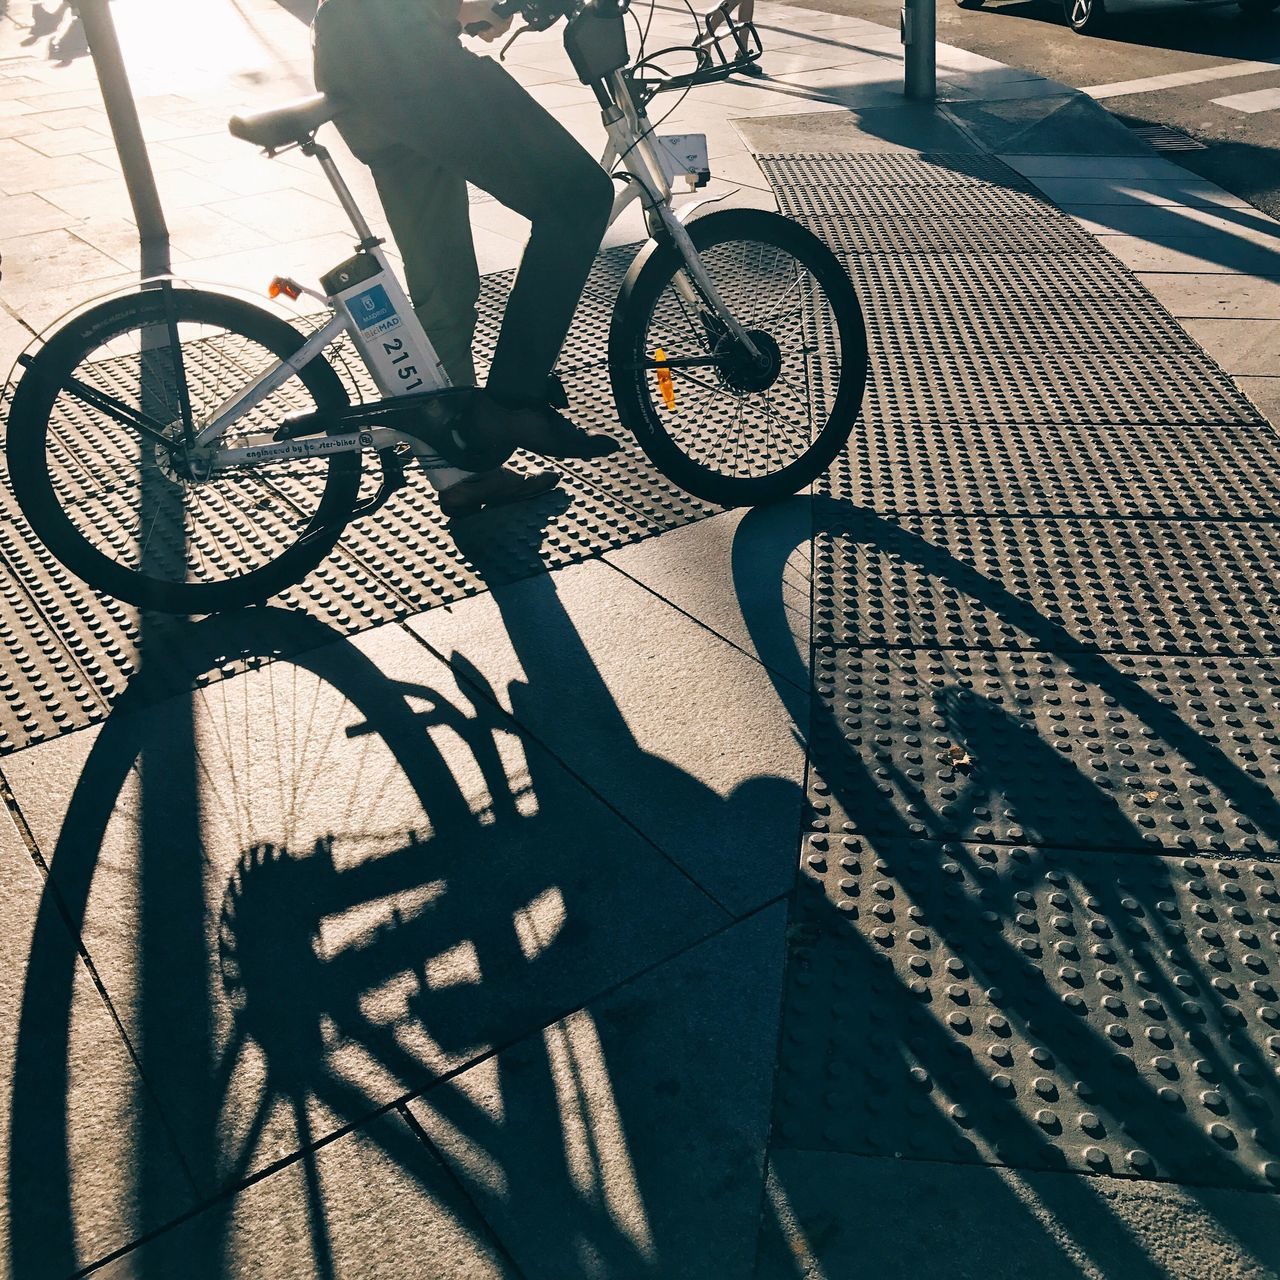 Bicycle Shadow Sunlight Day Outdoors Bicycle Rack Low Section Transportation High Angle View Mode Of Transport Real People Cycling Land Vehicle Lifestyles One Person Close-up People